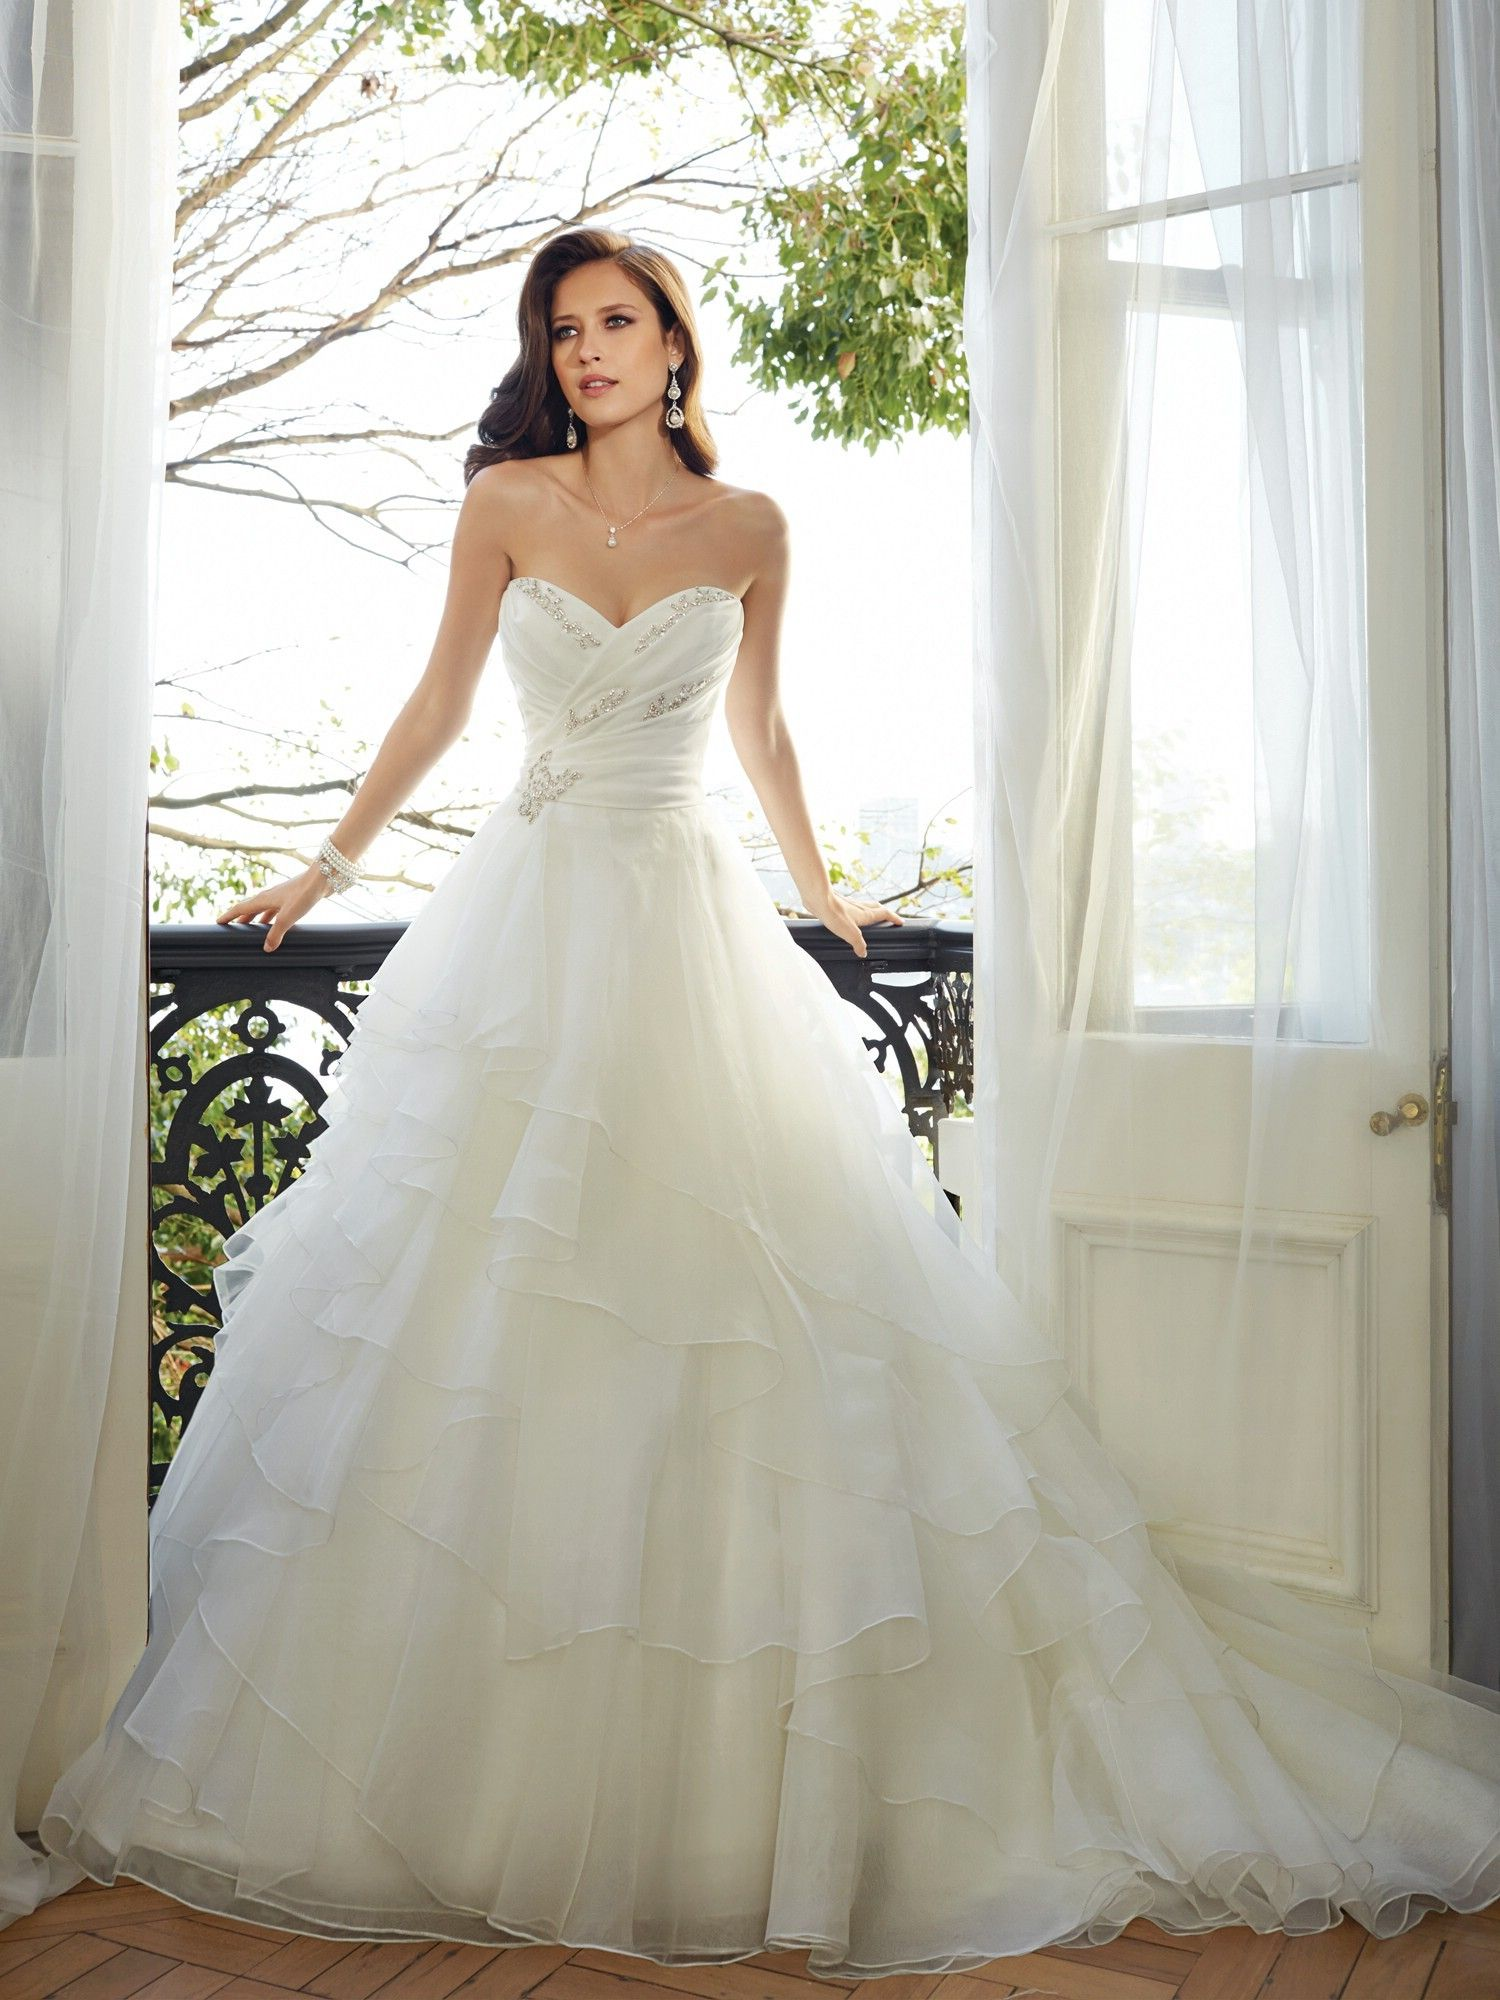 I Love The Skirt On This Dress Sophia Tolli 2015 Bridal Collection